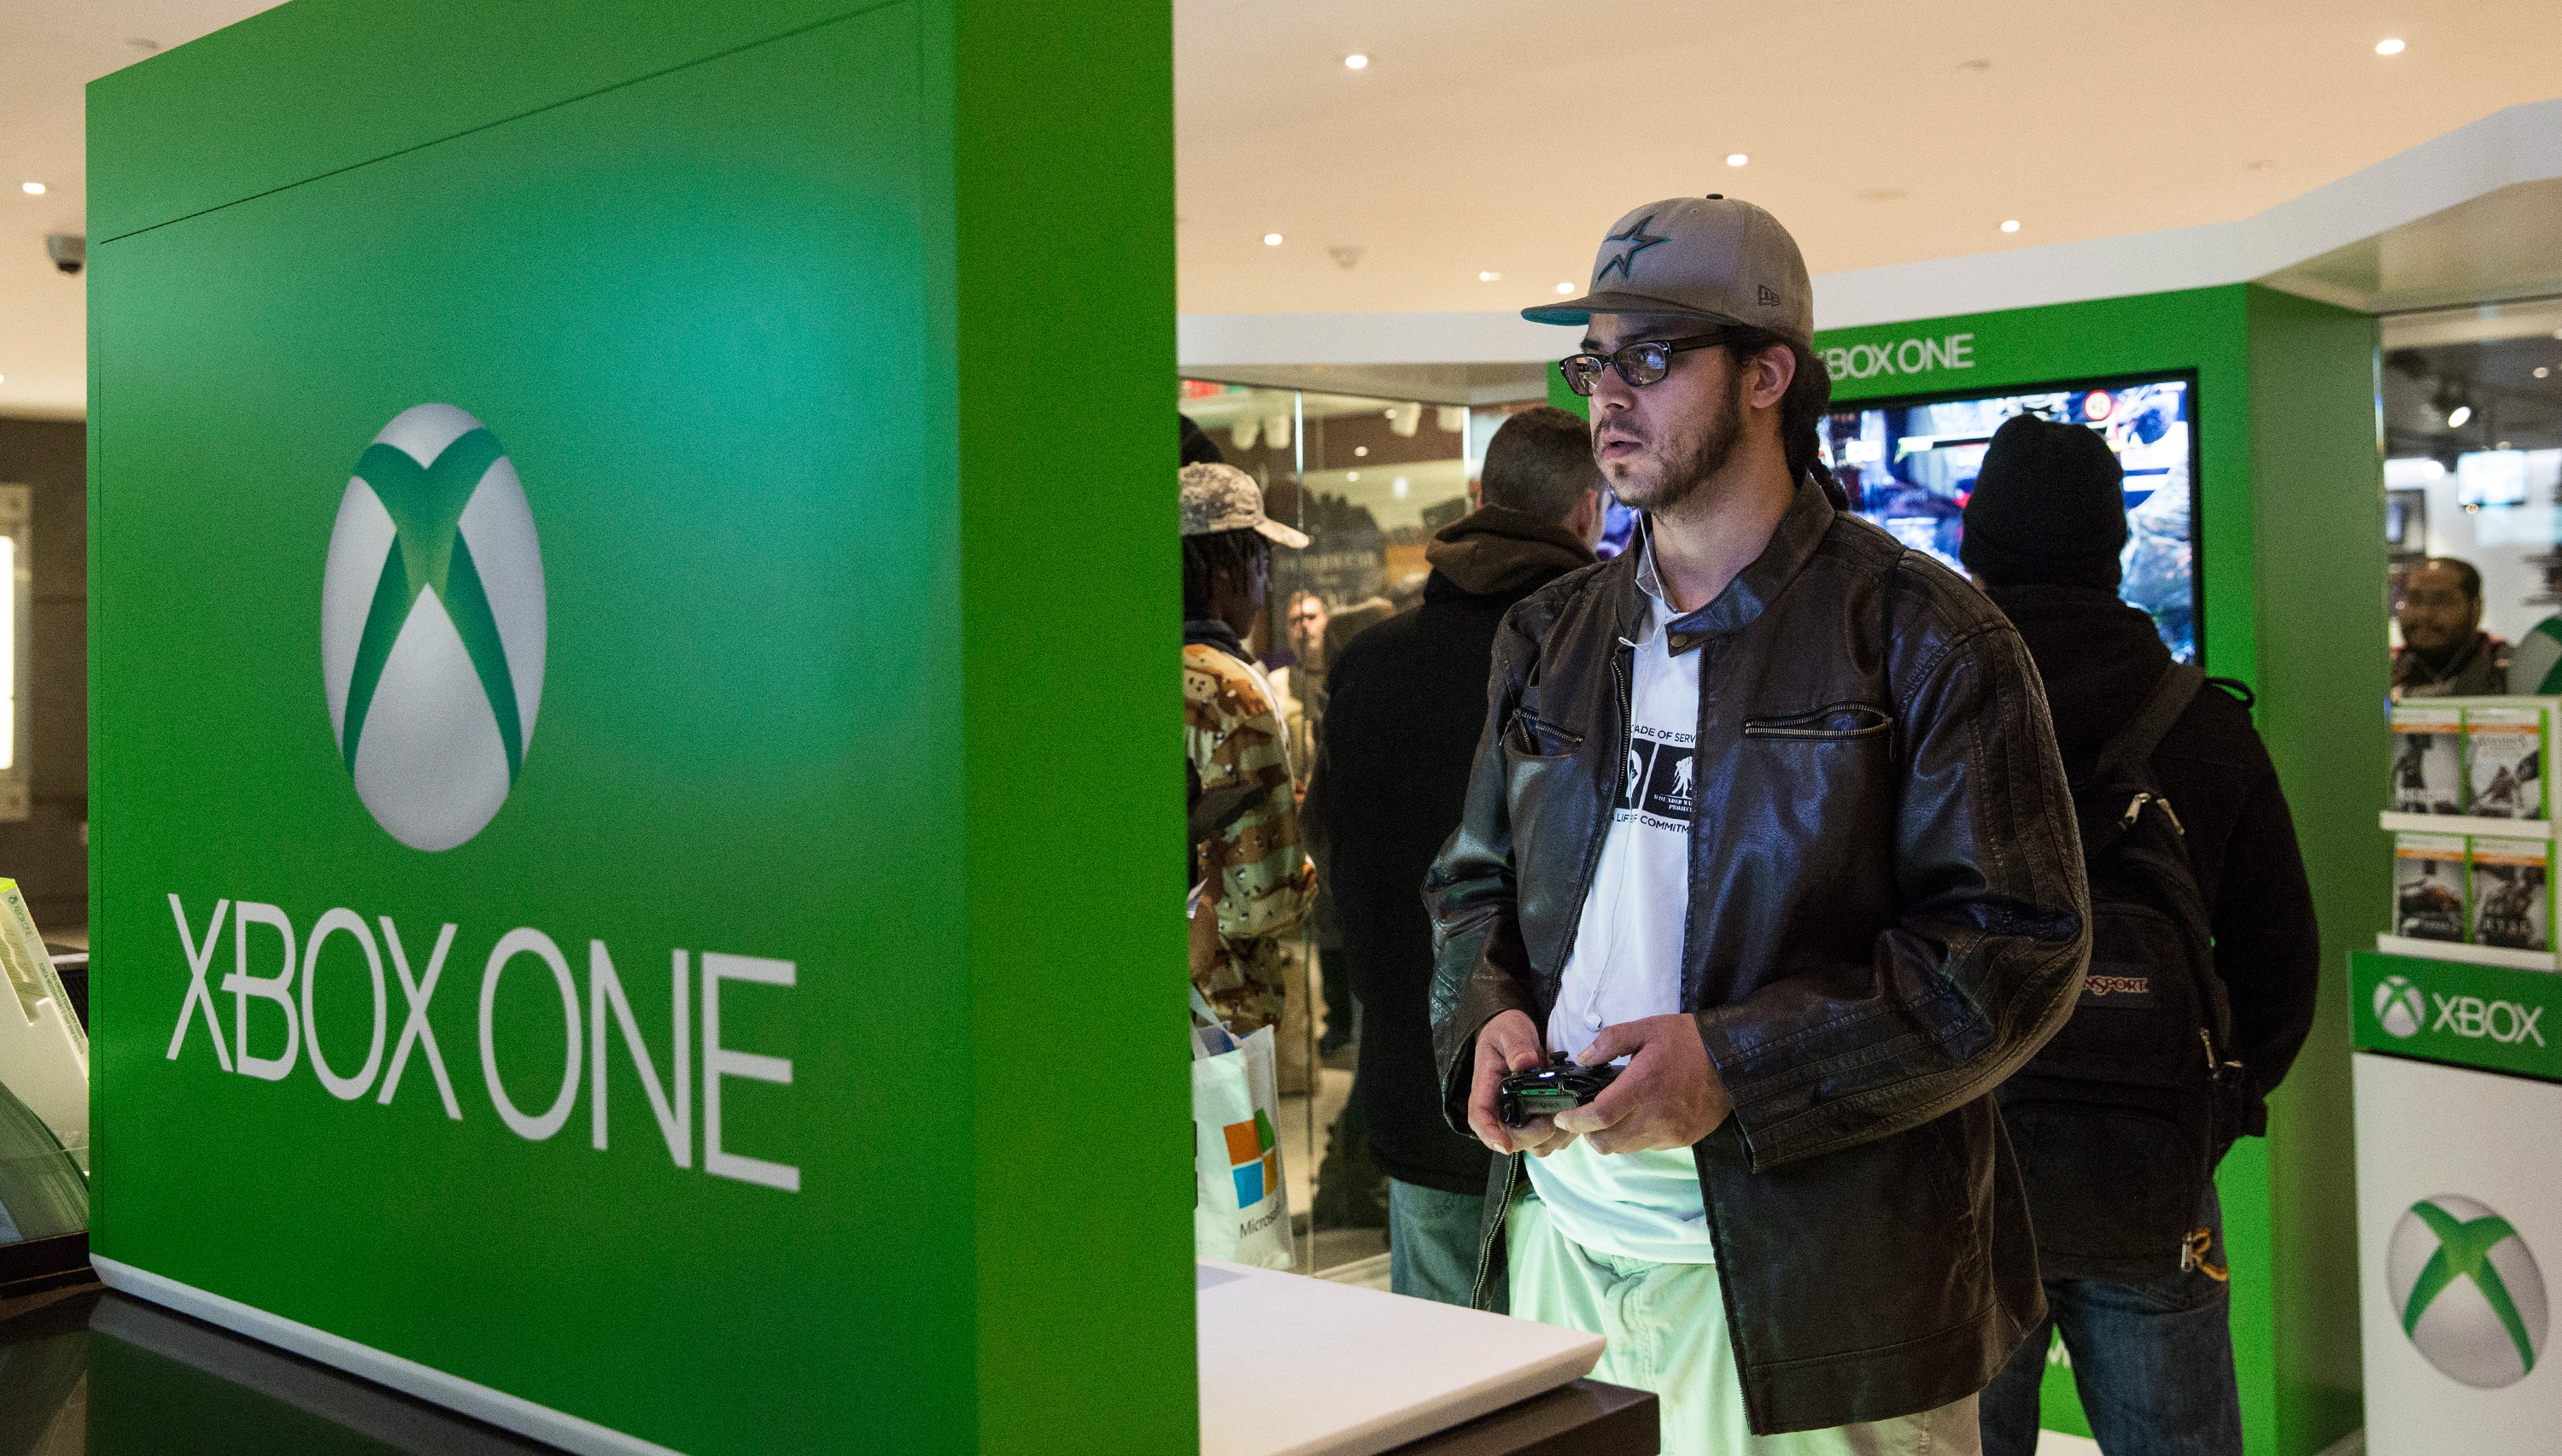 """NEW YORK, NY - NOVEMBER 22: A man plays an XBox One - a new video game console and home entertainment system made by Microsoft- while waiting in line to buy an XBox One from a Microsoft """"pop-up shop"""" at the Time Warner Center at Columbus Circle on 22, 2013 in New York City. The X Box One arrives just in time for the holiday season, and will be competing against the Sony Playstation Four, which came out last week.   Andrew Burton/Getty Images/AFP"""